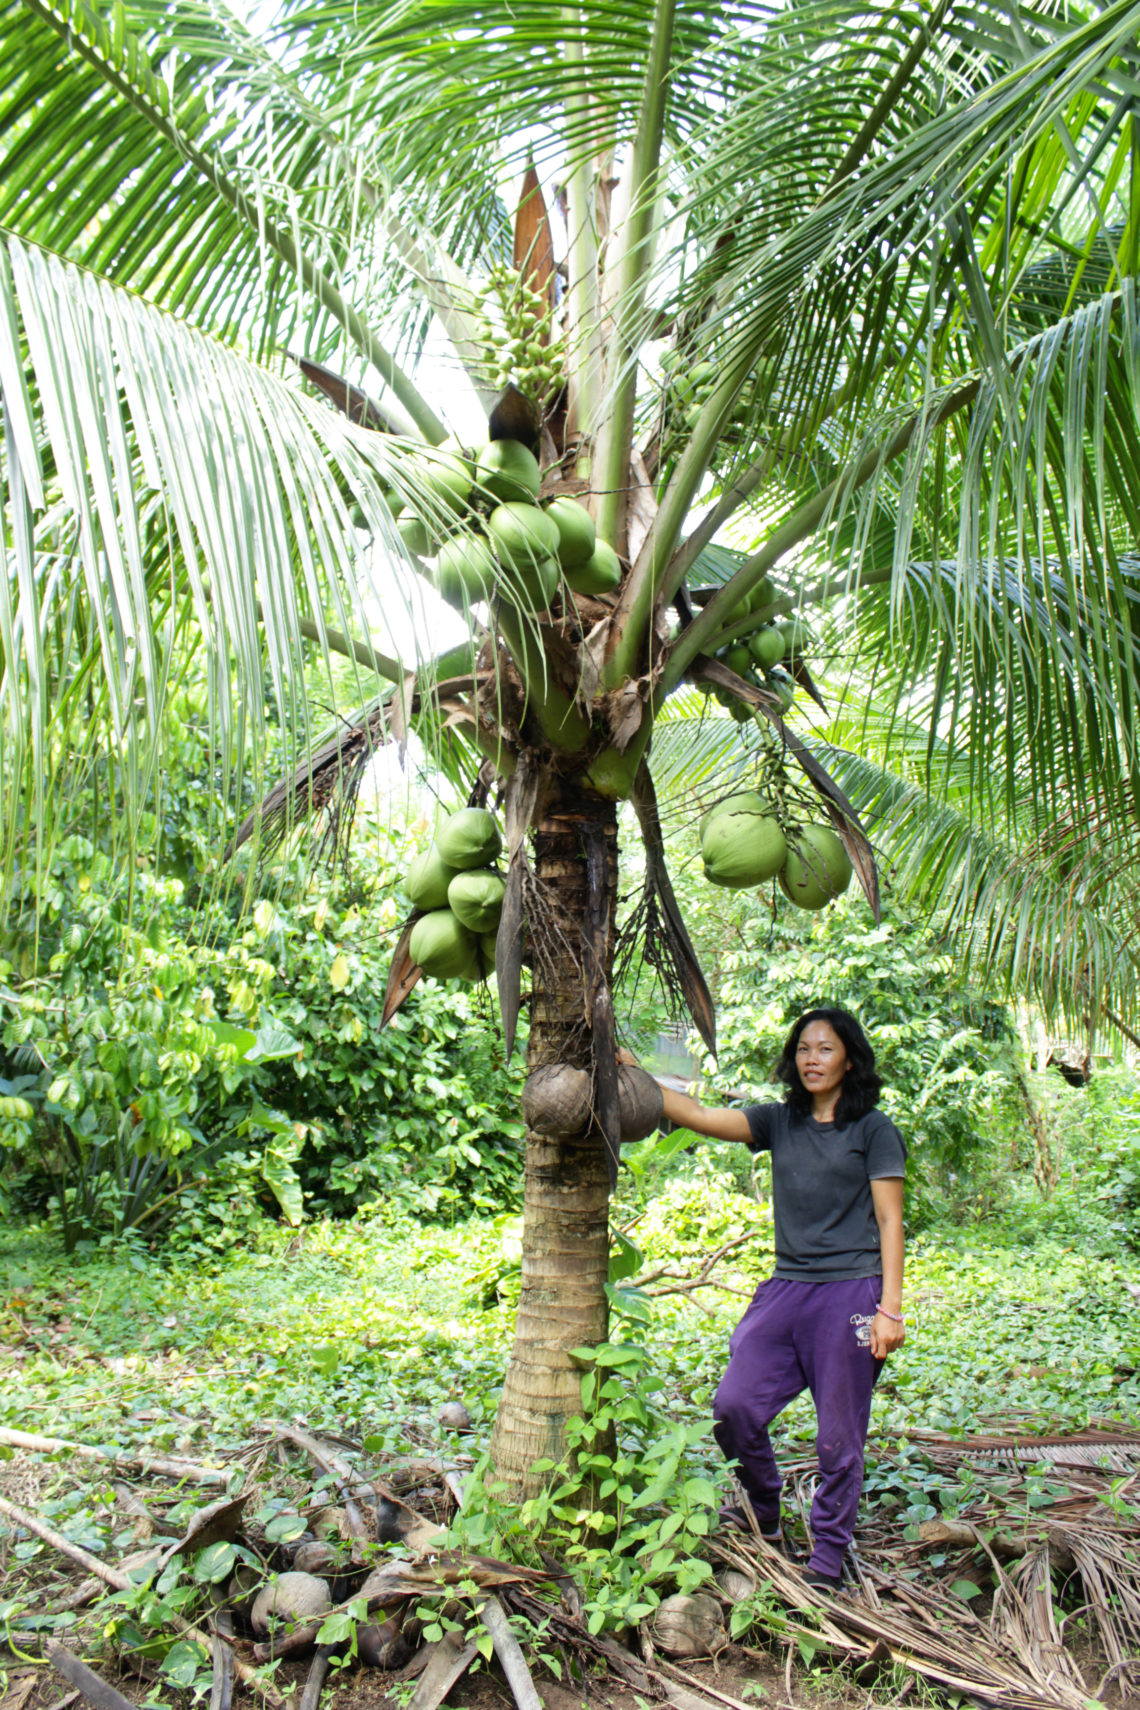 edna leaning on coconut tree